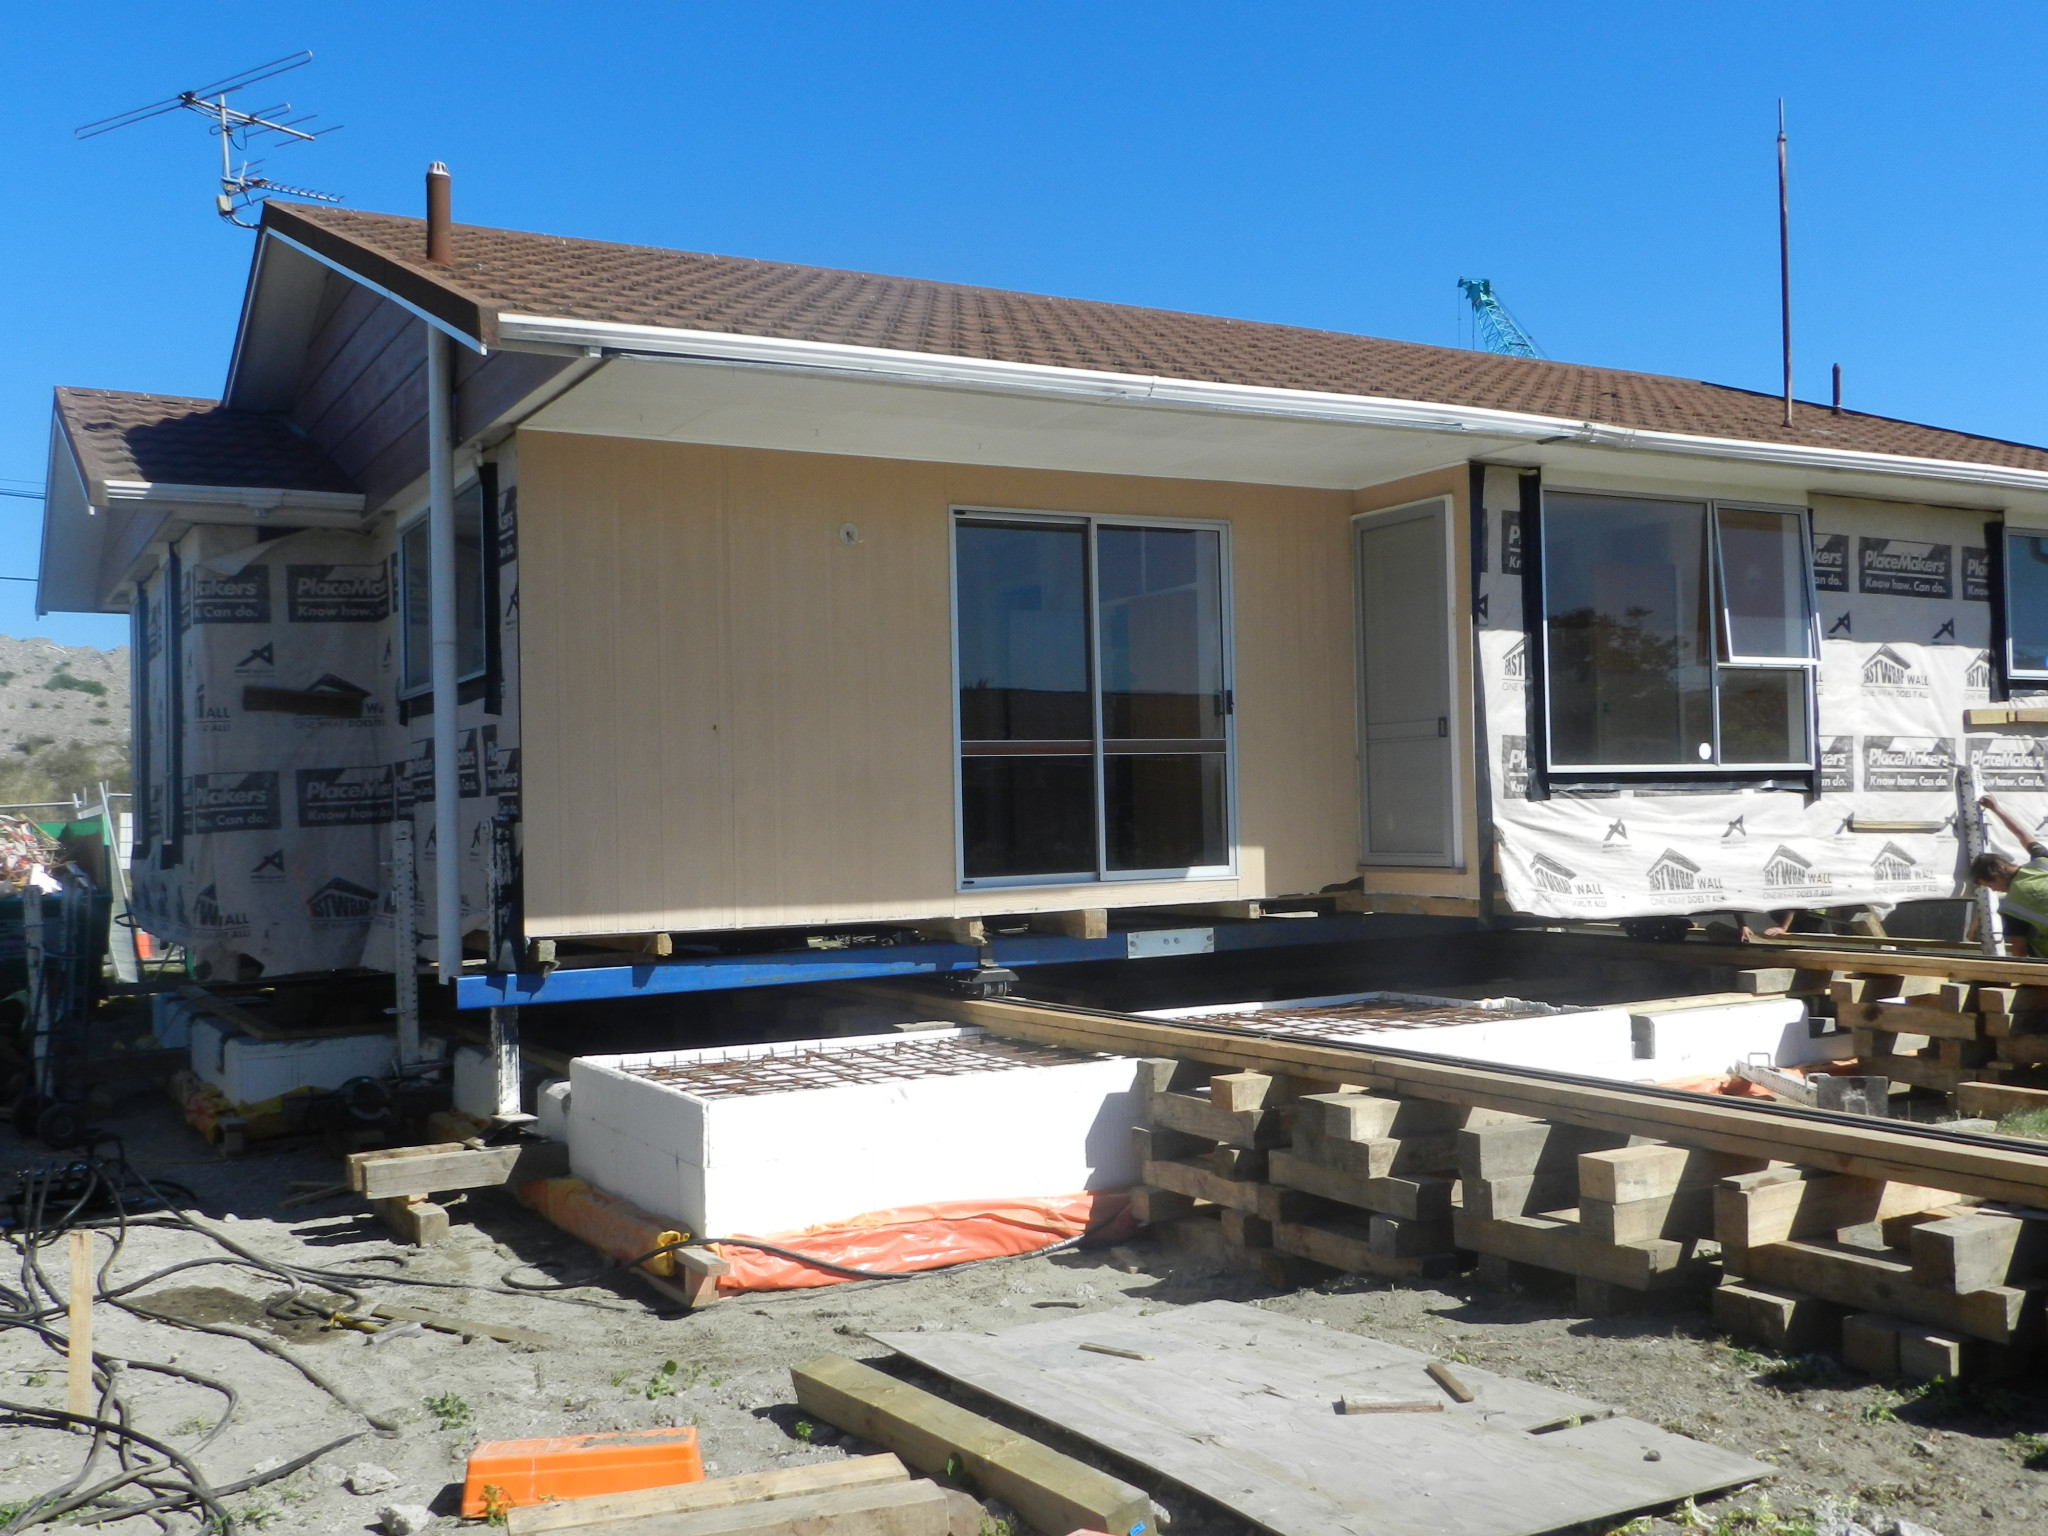 Moving a house across a property using house rolling methods in Christchurch